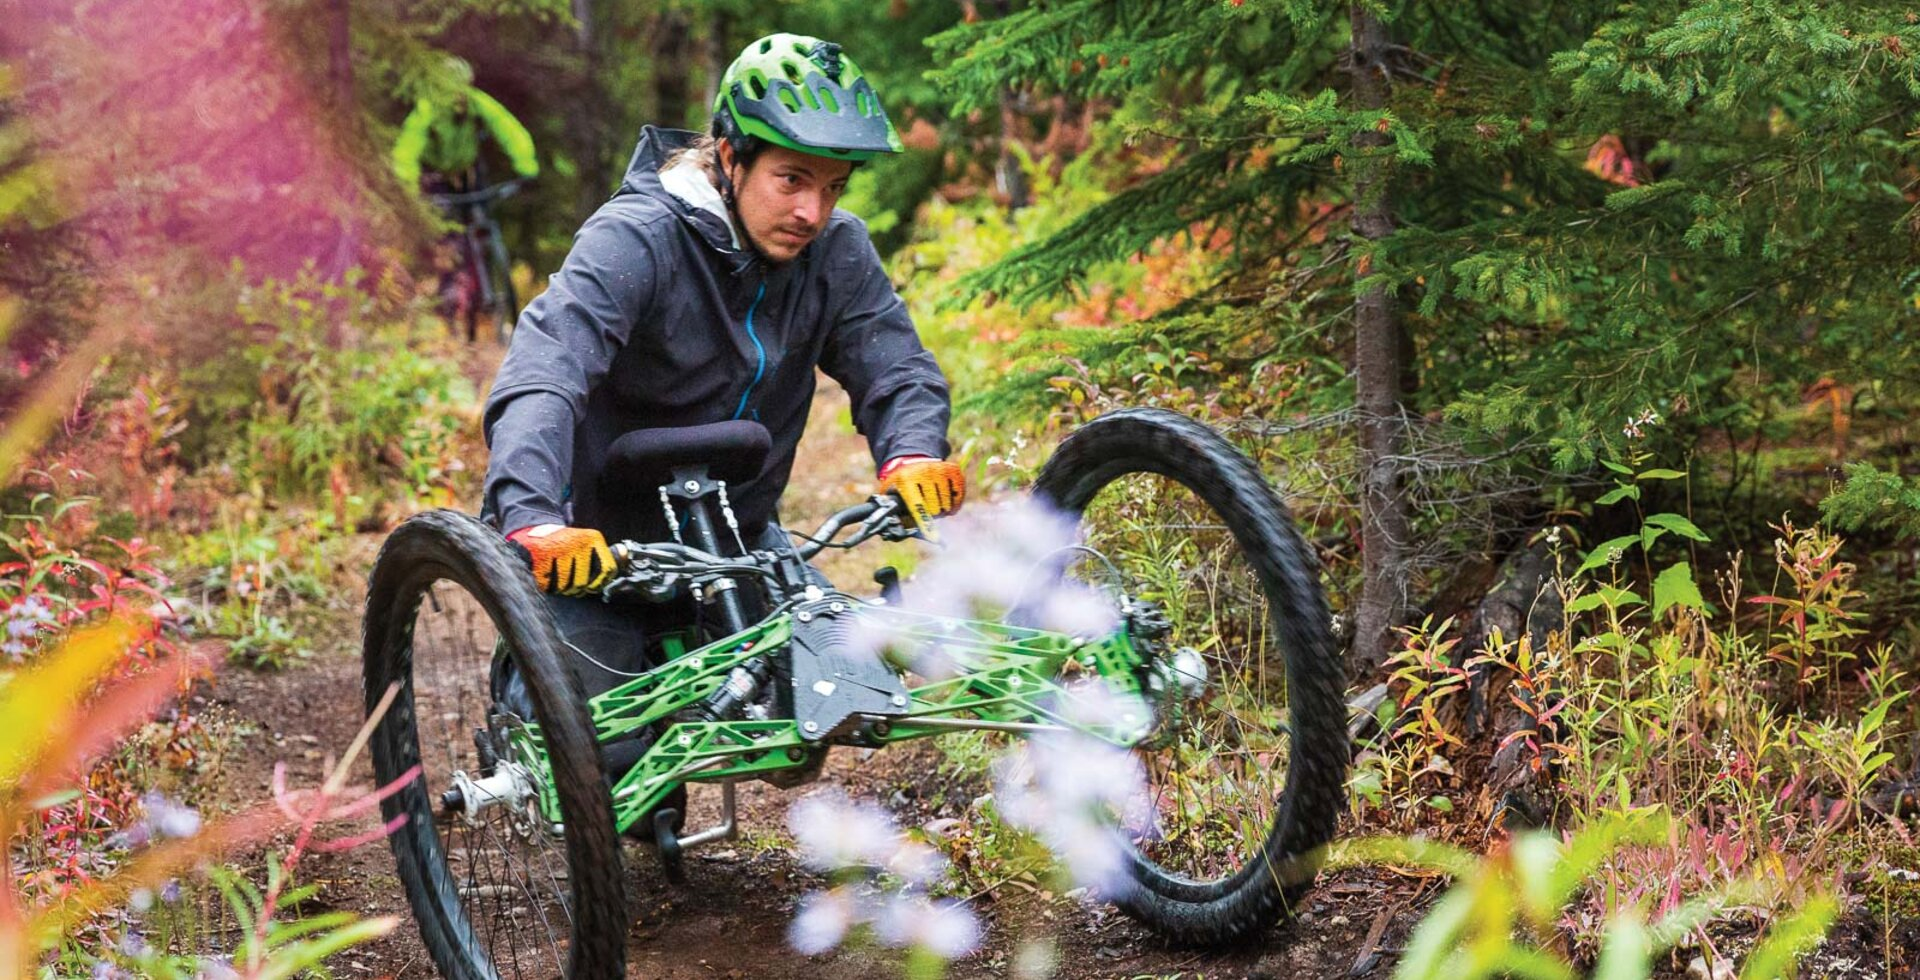 Ethan Keruger digging his wheels into the tacky dirt of the Spine Trail.